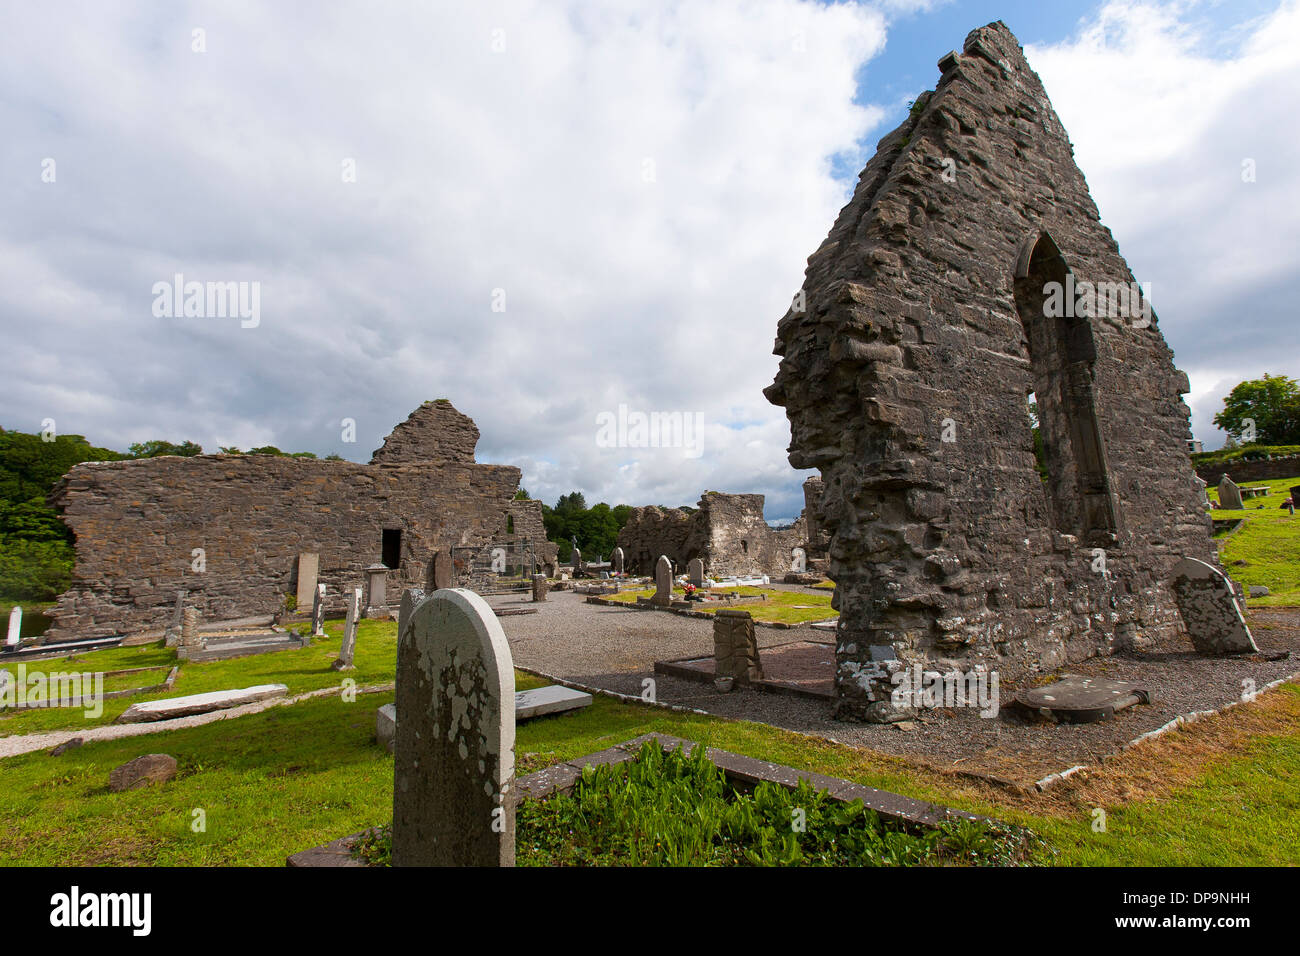 The remains of Donegal's Franciscan Abbey - Stock Image